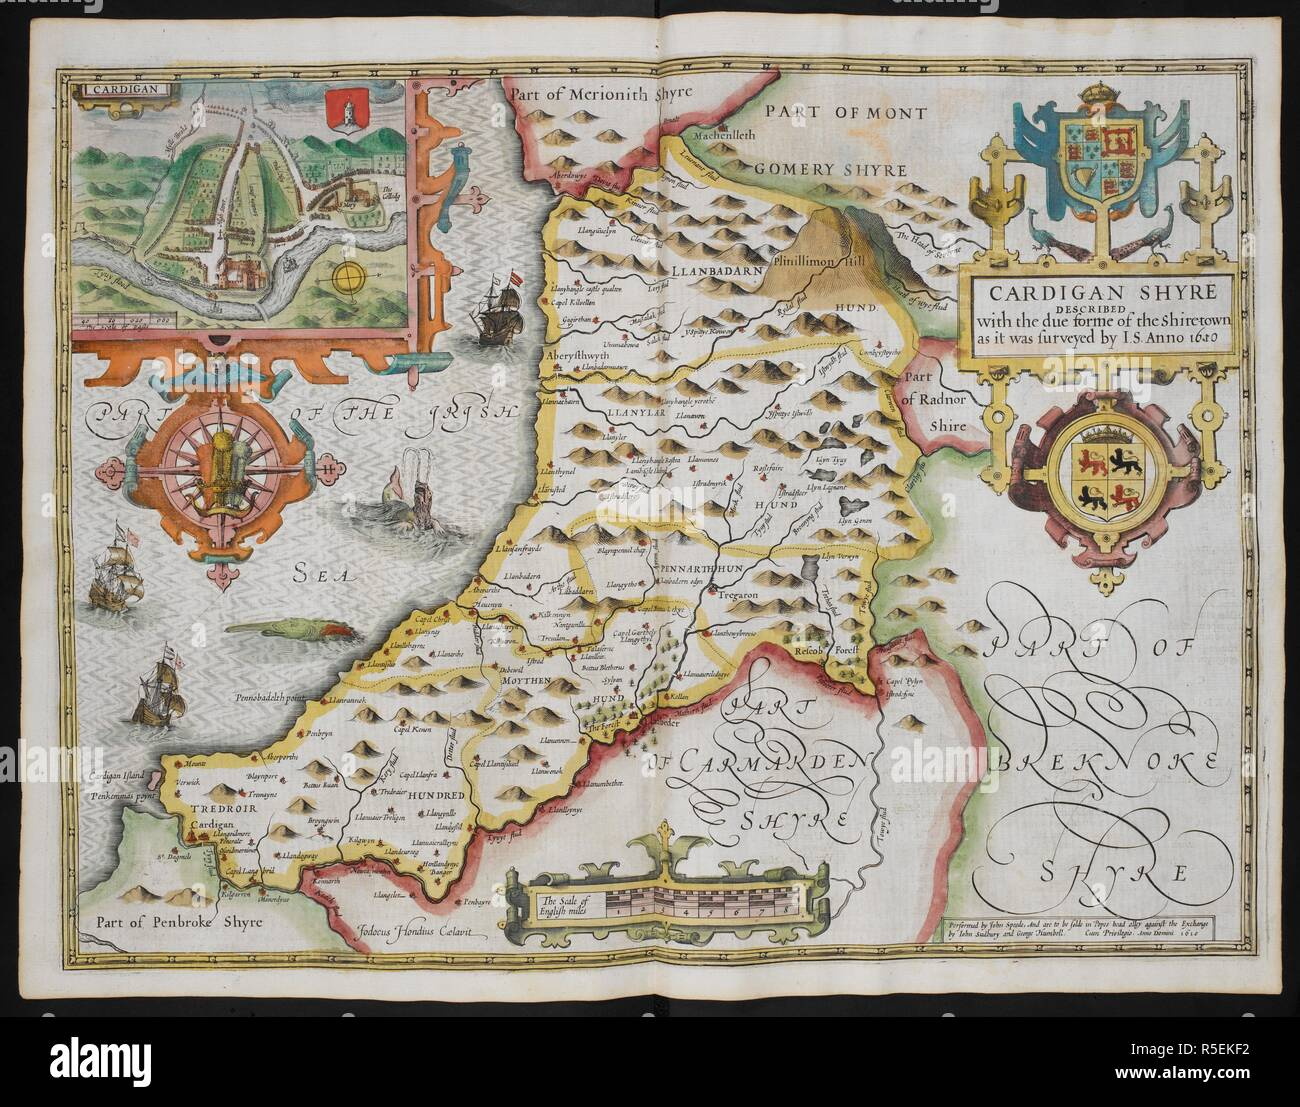 Cardigan Shyre described with the due forme of the Shiretown as it was surveyed by I.S. annon 1610. A map of Cardiganshire; inset, a map of Cardigan. The Theatre of the Empire of Great Britain. London : John Sudbury & George Humble, 1611. Source: Maps C.7.c.20.(2.), f.113. Author: SPEED, JOHN. - Stock Image